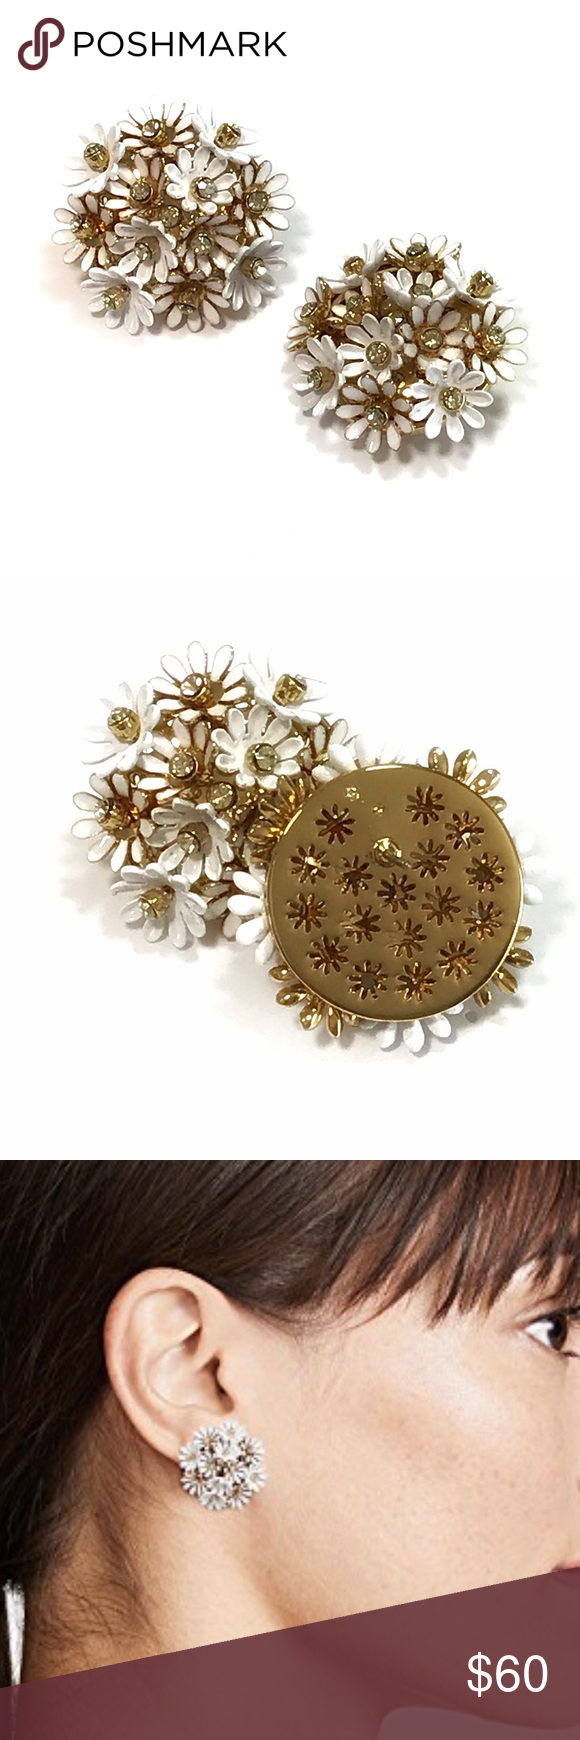 b7e810511651af Kate Spade Love Me Love Me Not Statement Studs From the Loves Me Loves Me  Not Collection. Clustered daisy embellishments adorn stud earrings.